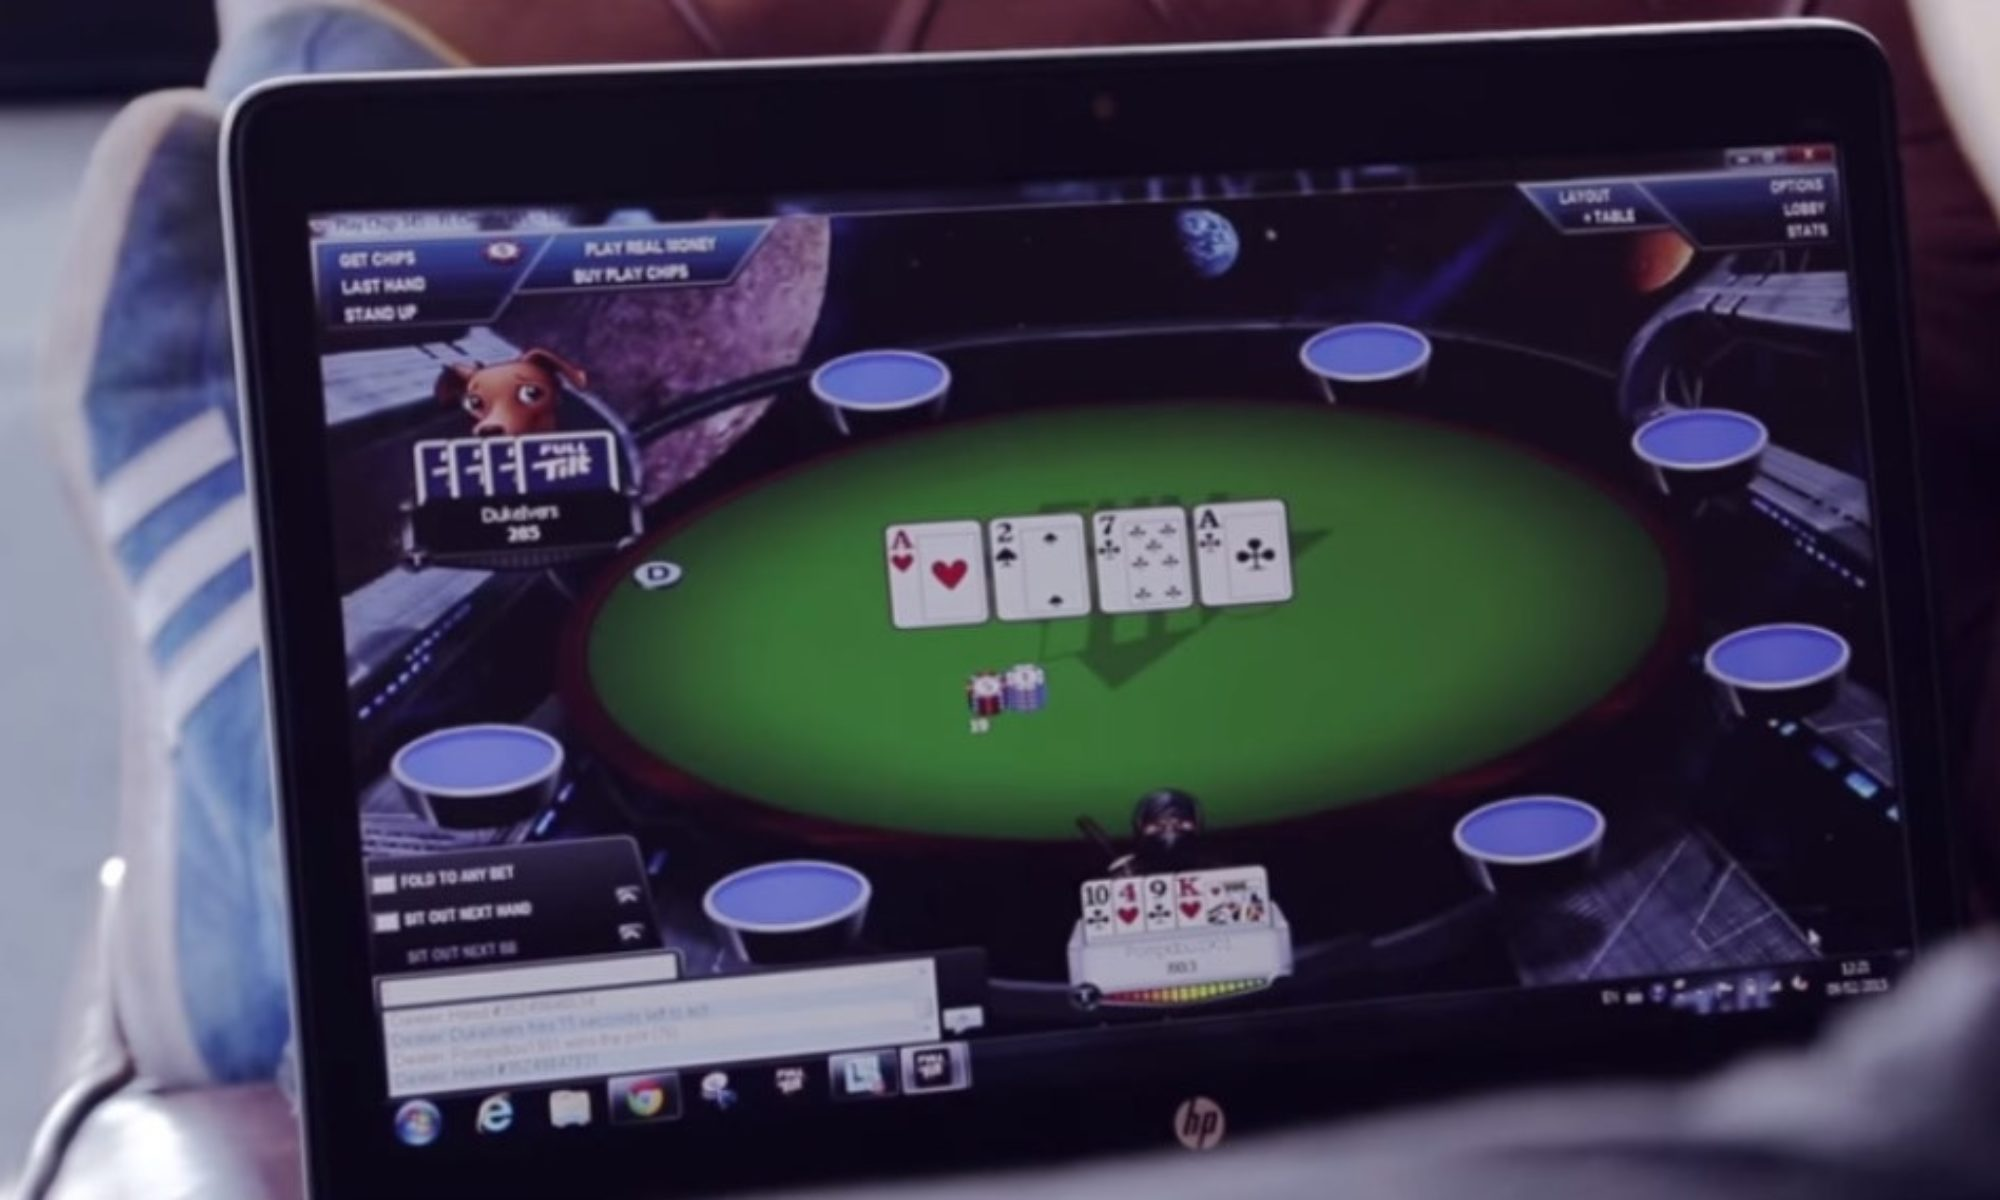 PokerTracker vs. Hold'em Manager: Which Is Better?